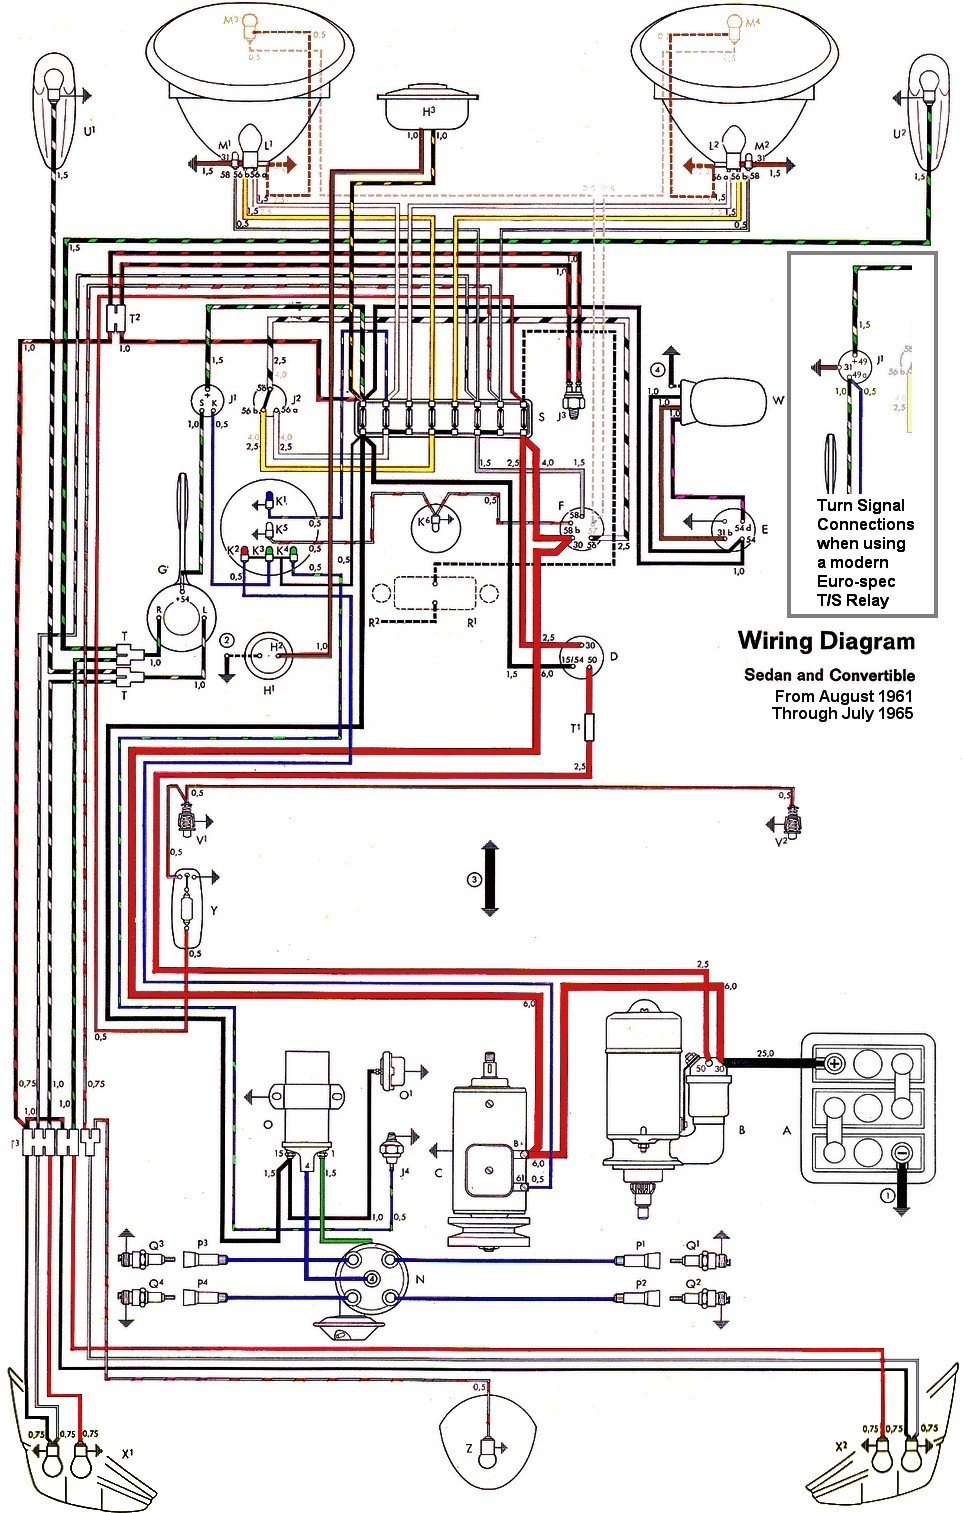 bug_62 65withinset volkswagen wiring diagram volkswagen golf wiring diagram \u2022 free vw type 3 wiring harness at couponss.co